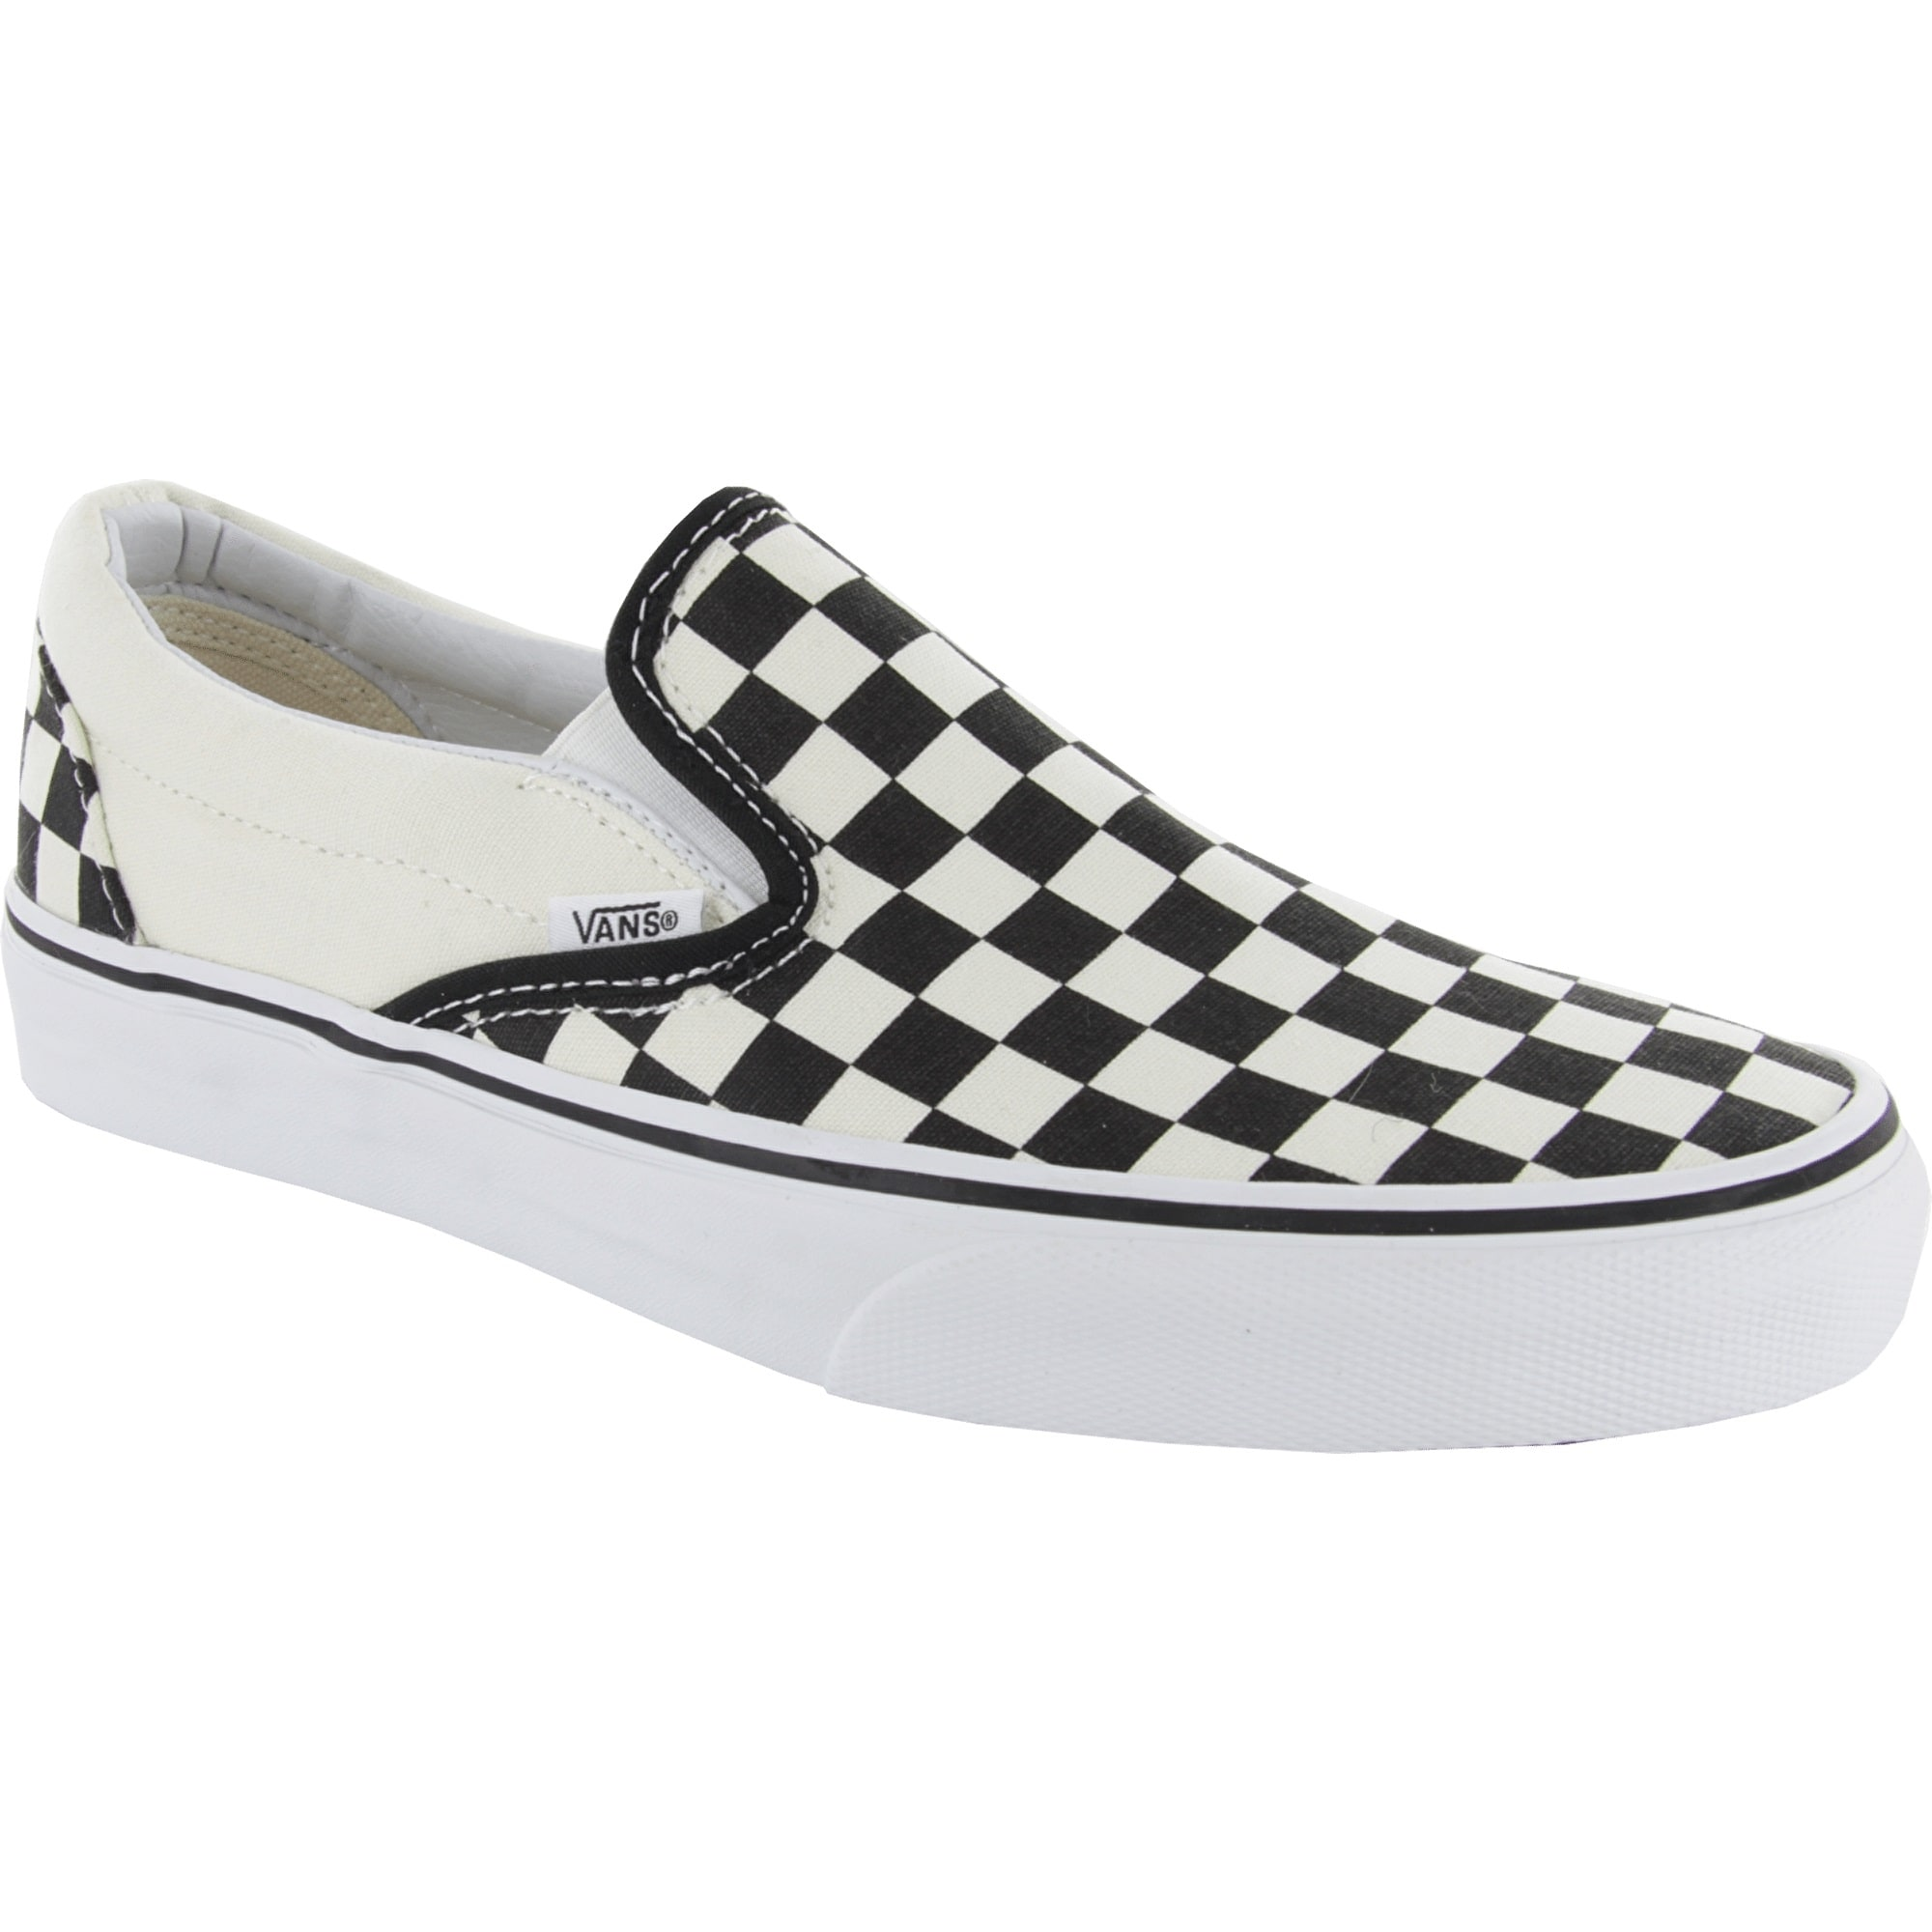 vans classic enfiler chaussures noir blanc damier ebay. Black Bedroom Furniture Sets. Home Design Ideas